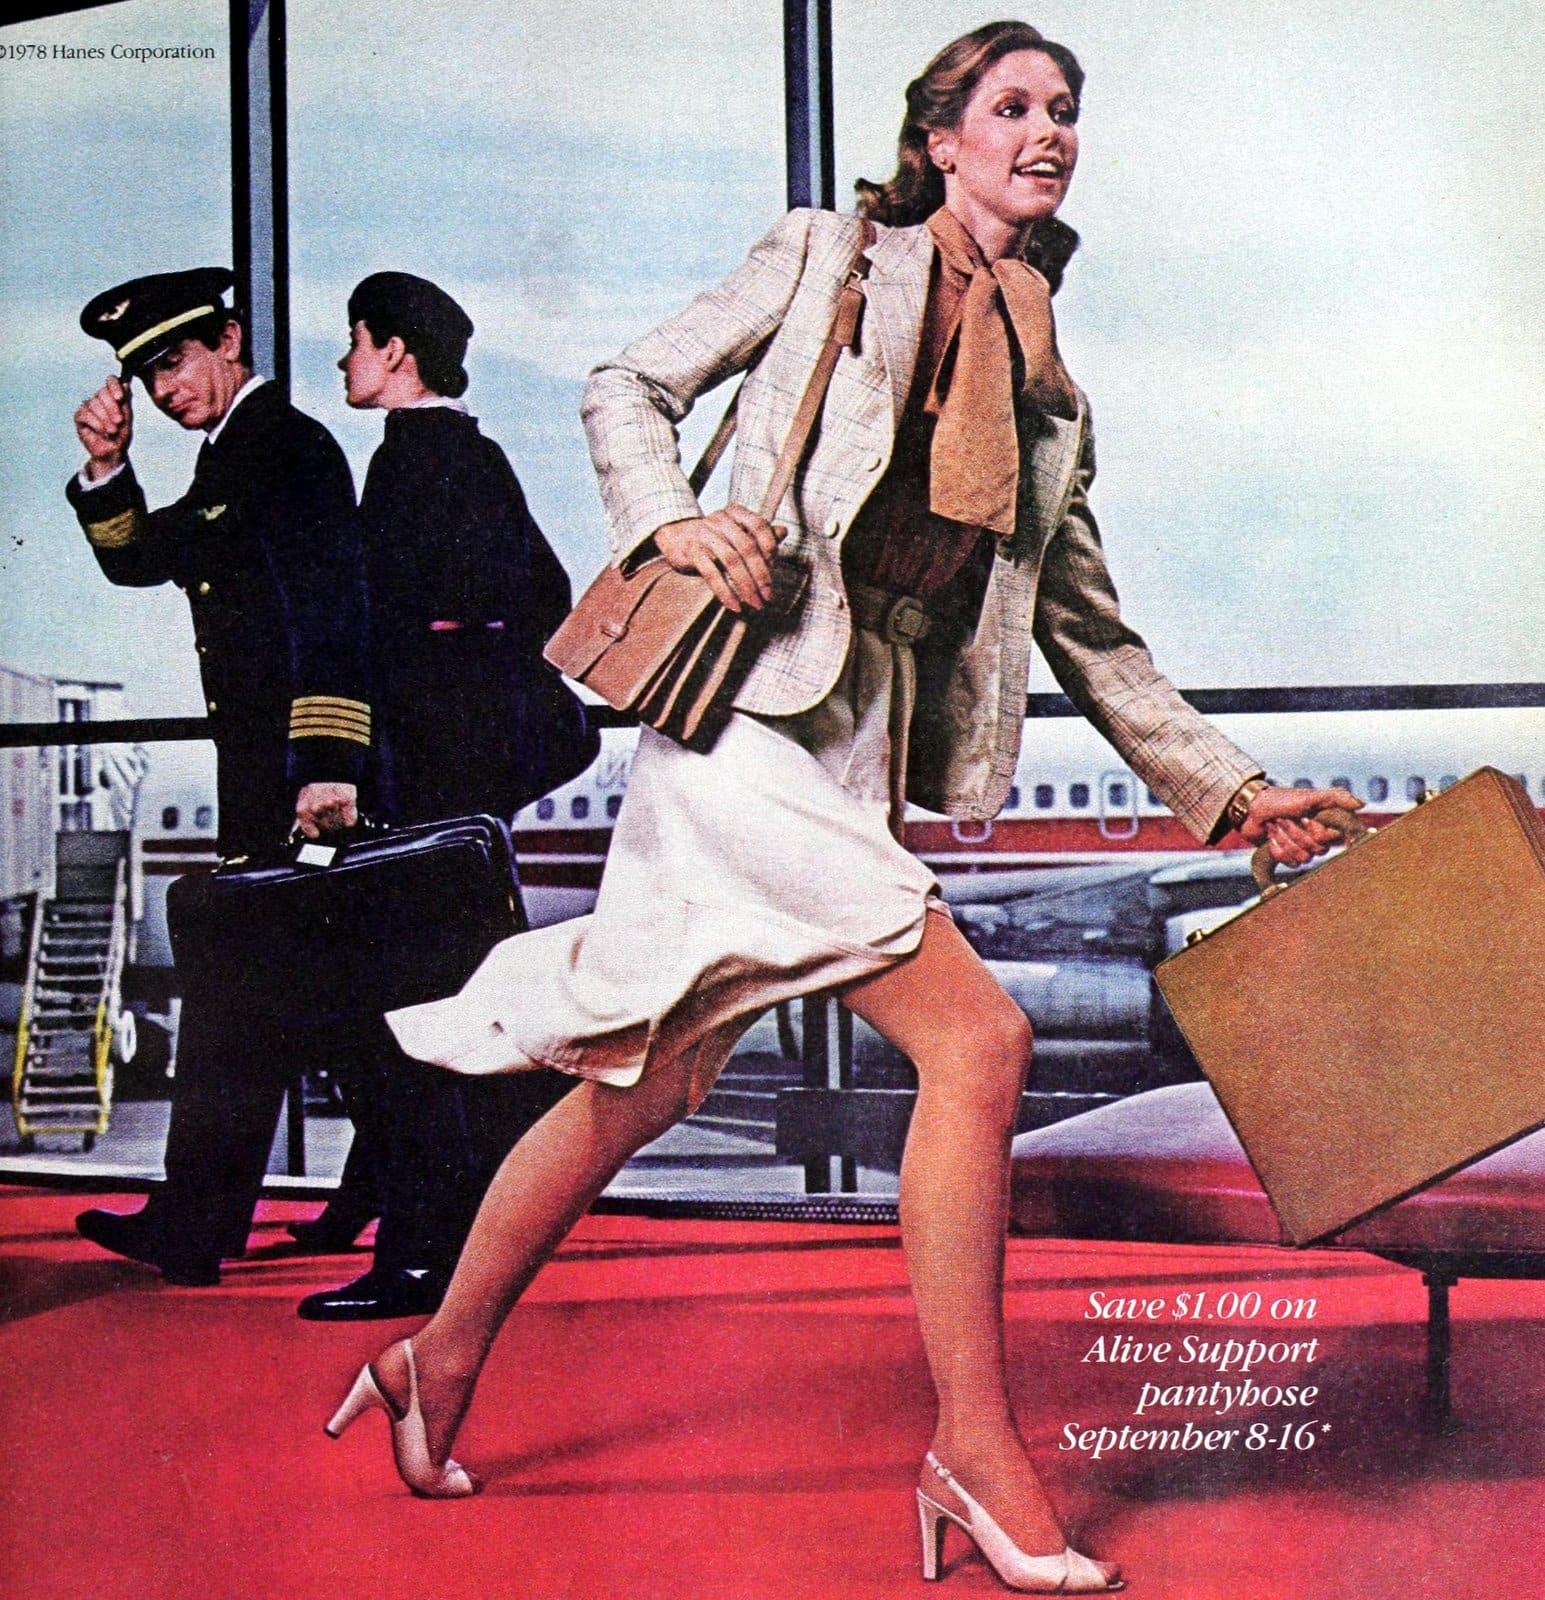 70s woman in business suit with skirt rushing through the airport (1978)